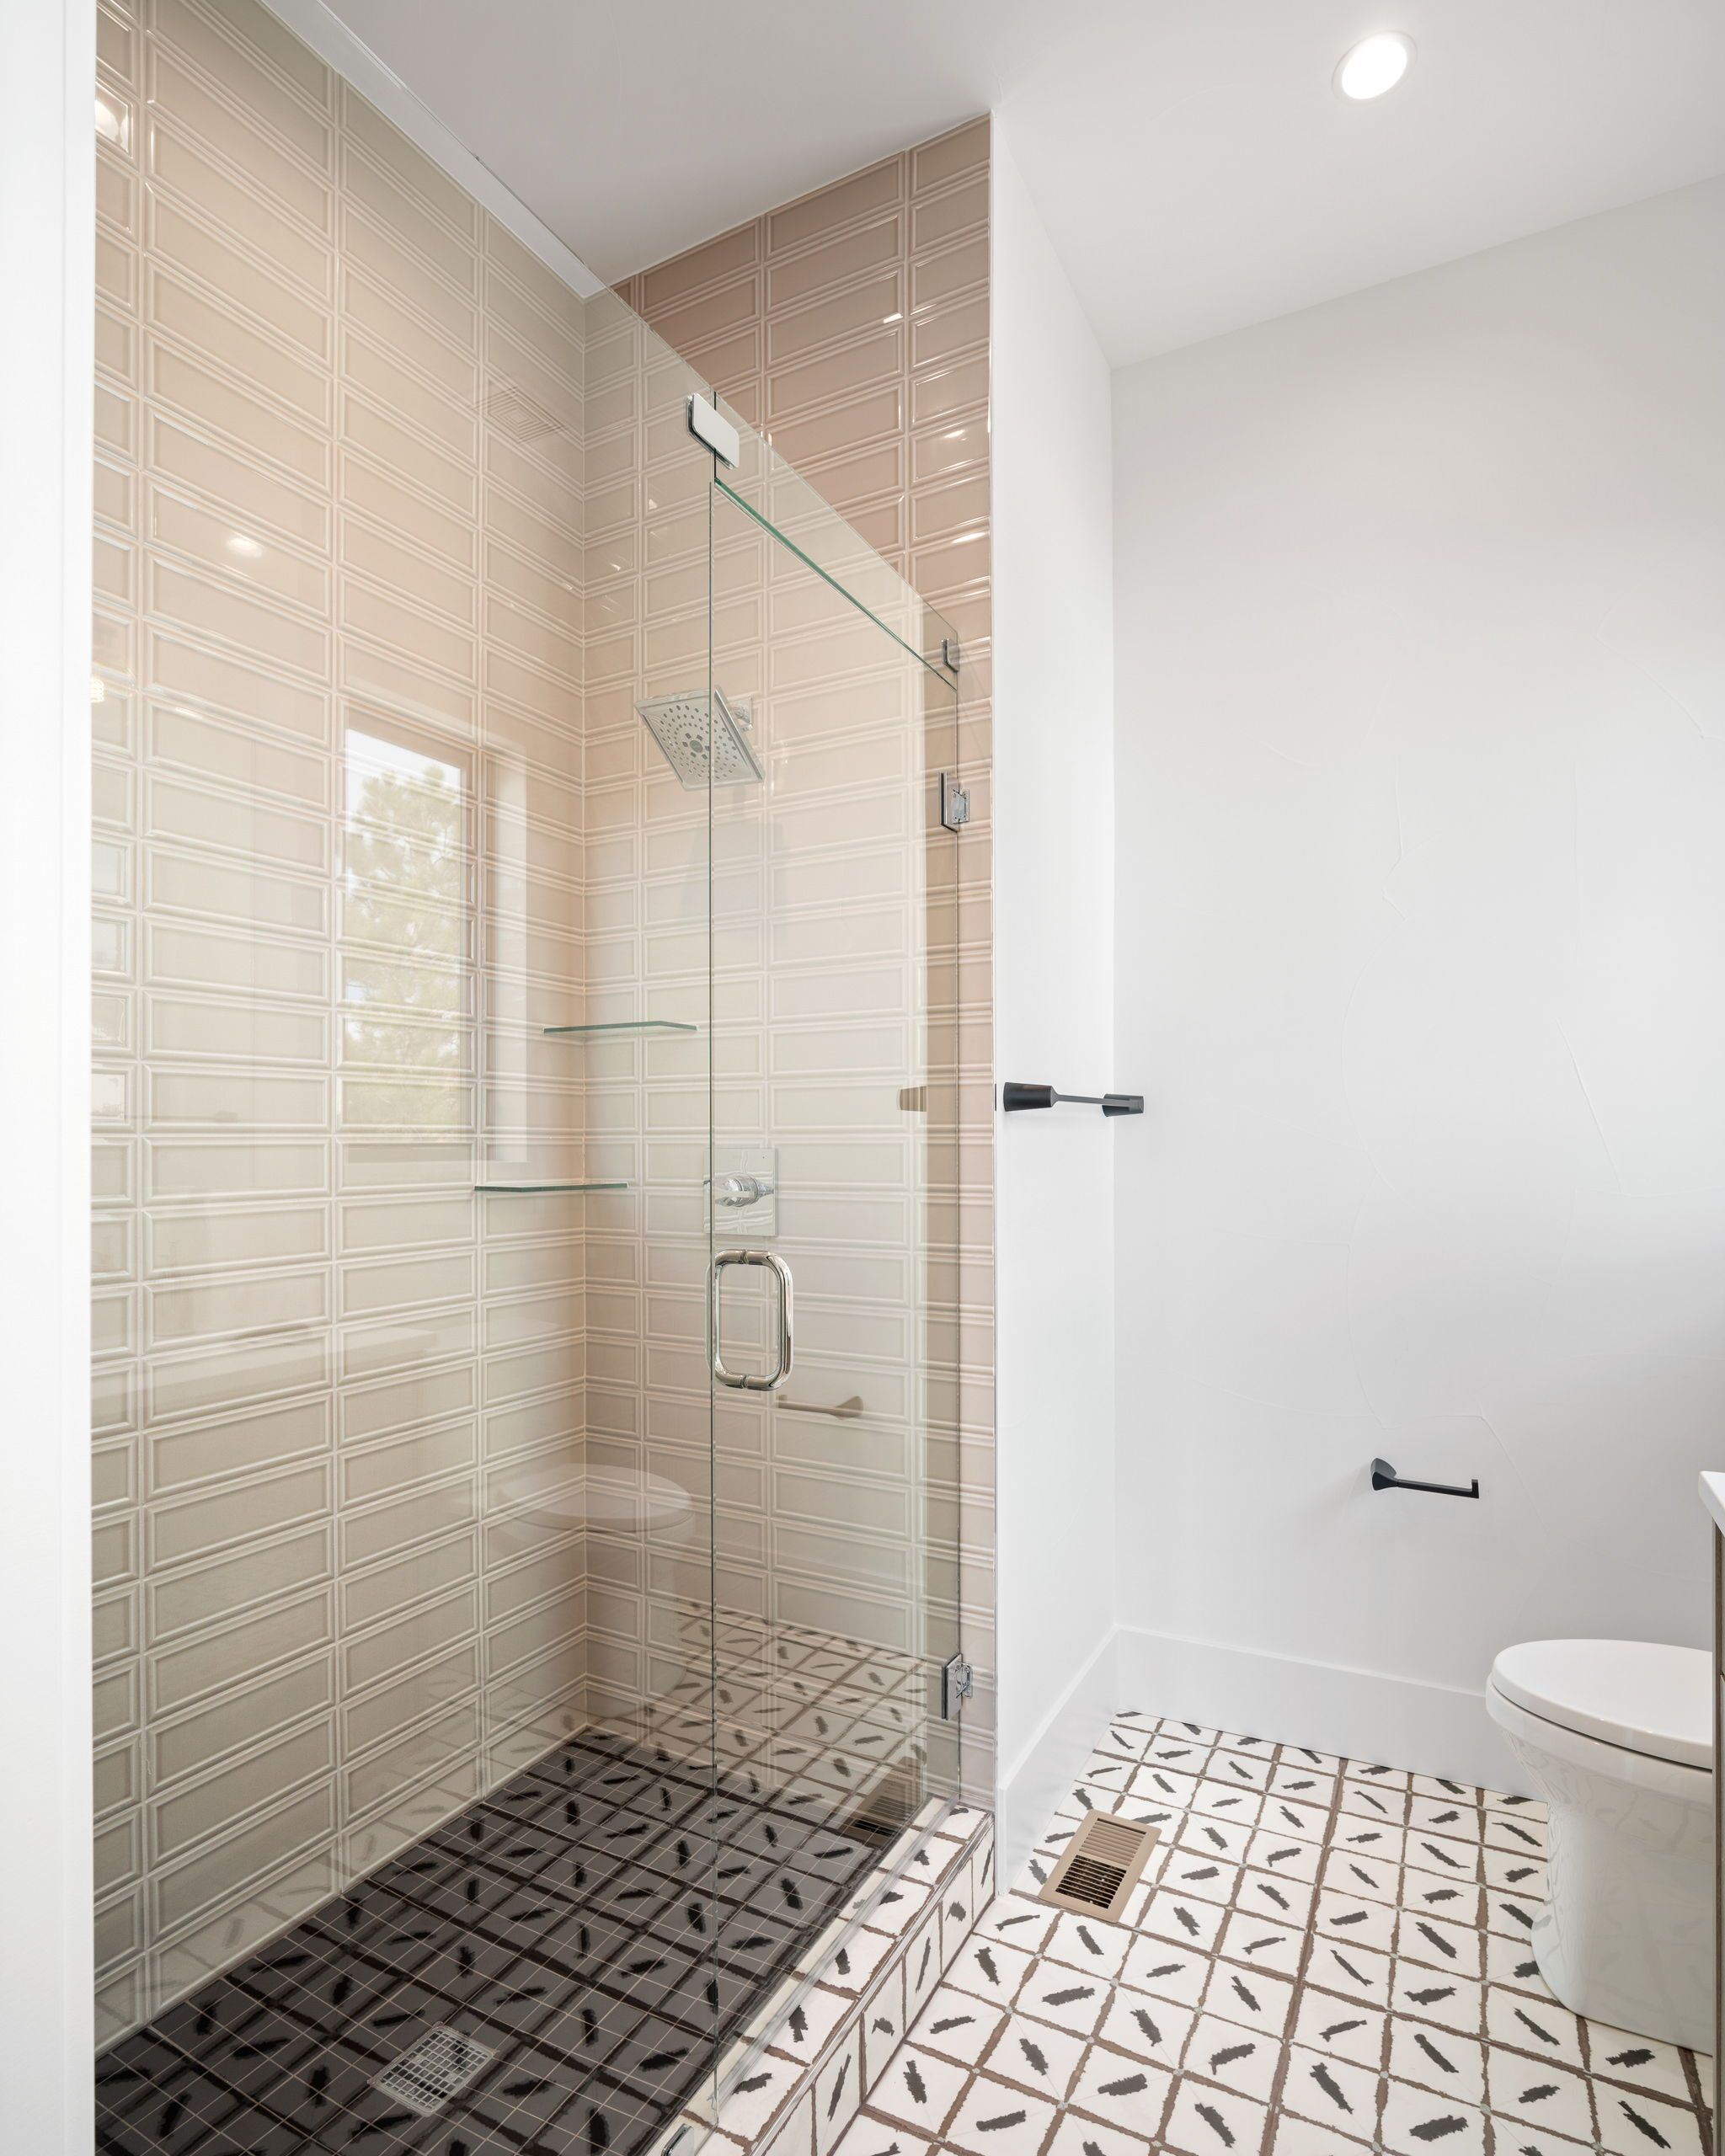 Russo Residential S Modern Day Gatsby Home The Tile Shop Blog In 2021 Bathroom Tile Designs The Tile Shop Bathroom Trends